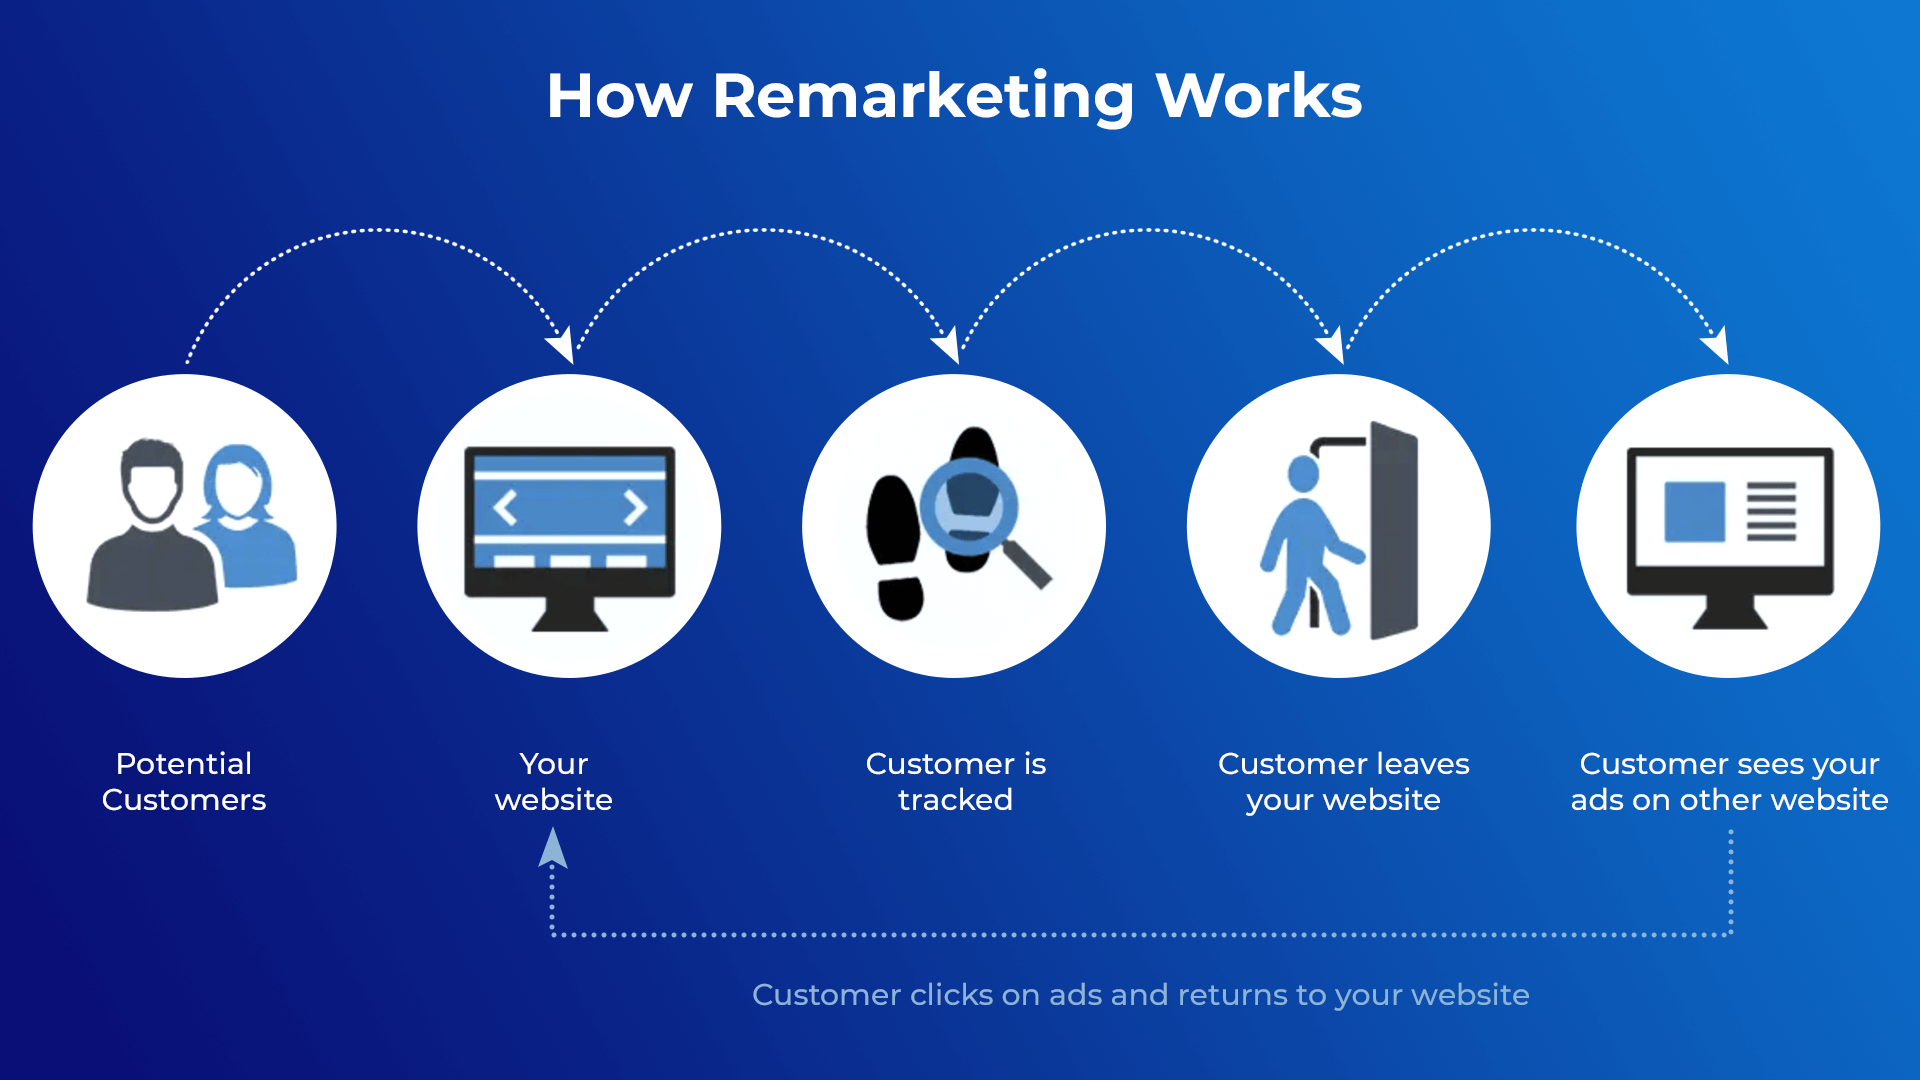 How Remarketing Works. Potential customers visit your website. The remarketing pixel installed on your website will track the customer, and show targeted ads to them to reengage them to visit your website again.